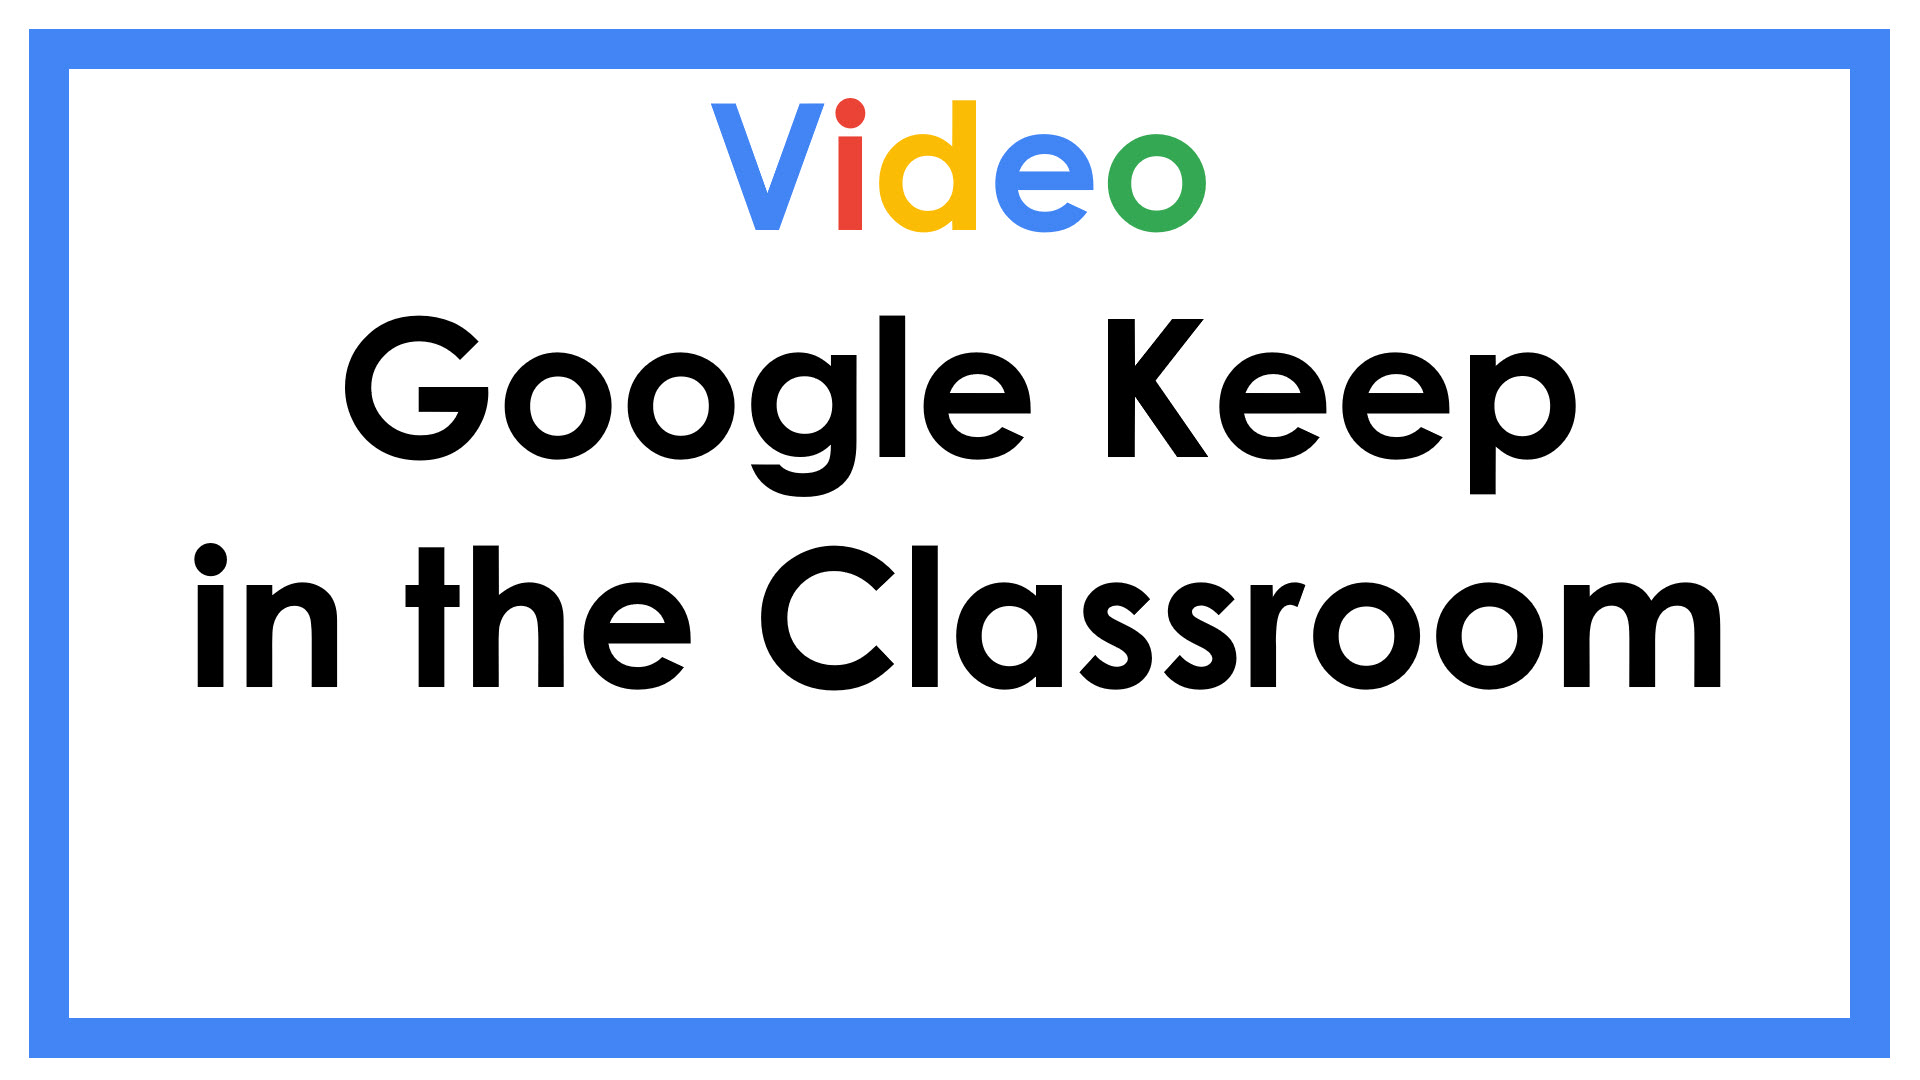 Google Keep in the Classroom